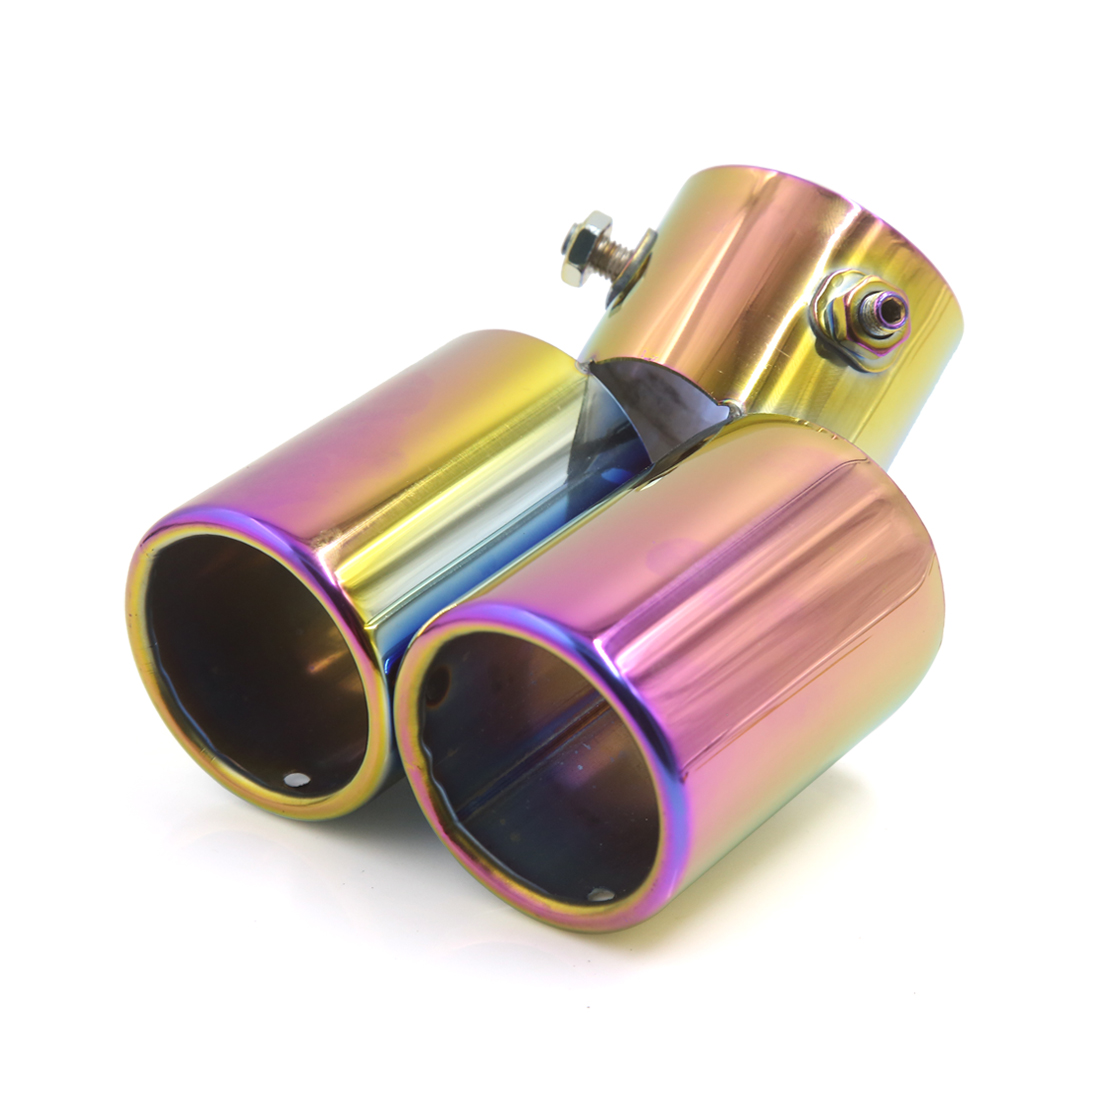 "2.4"" Dia Inlet Double Outlet Exhaust Muffler Tip Silencer Pipe for Car Vehicle"